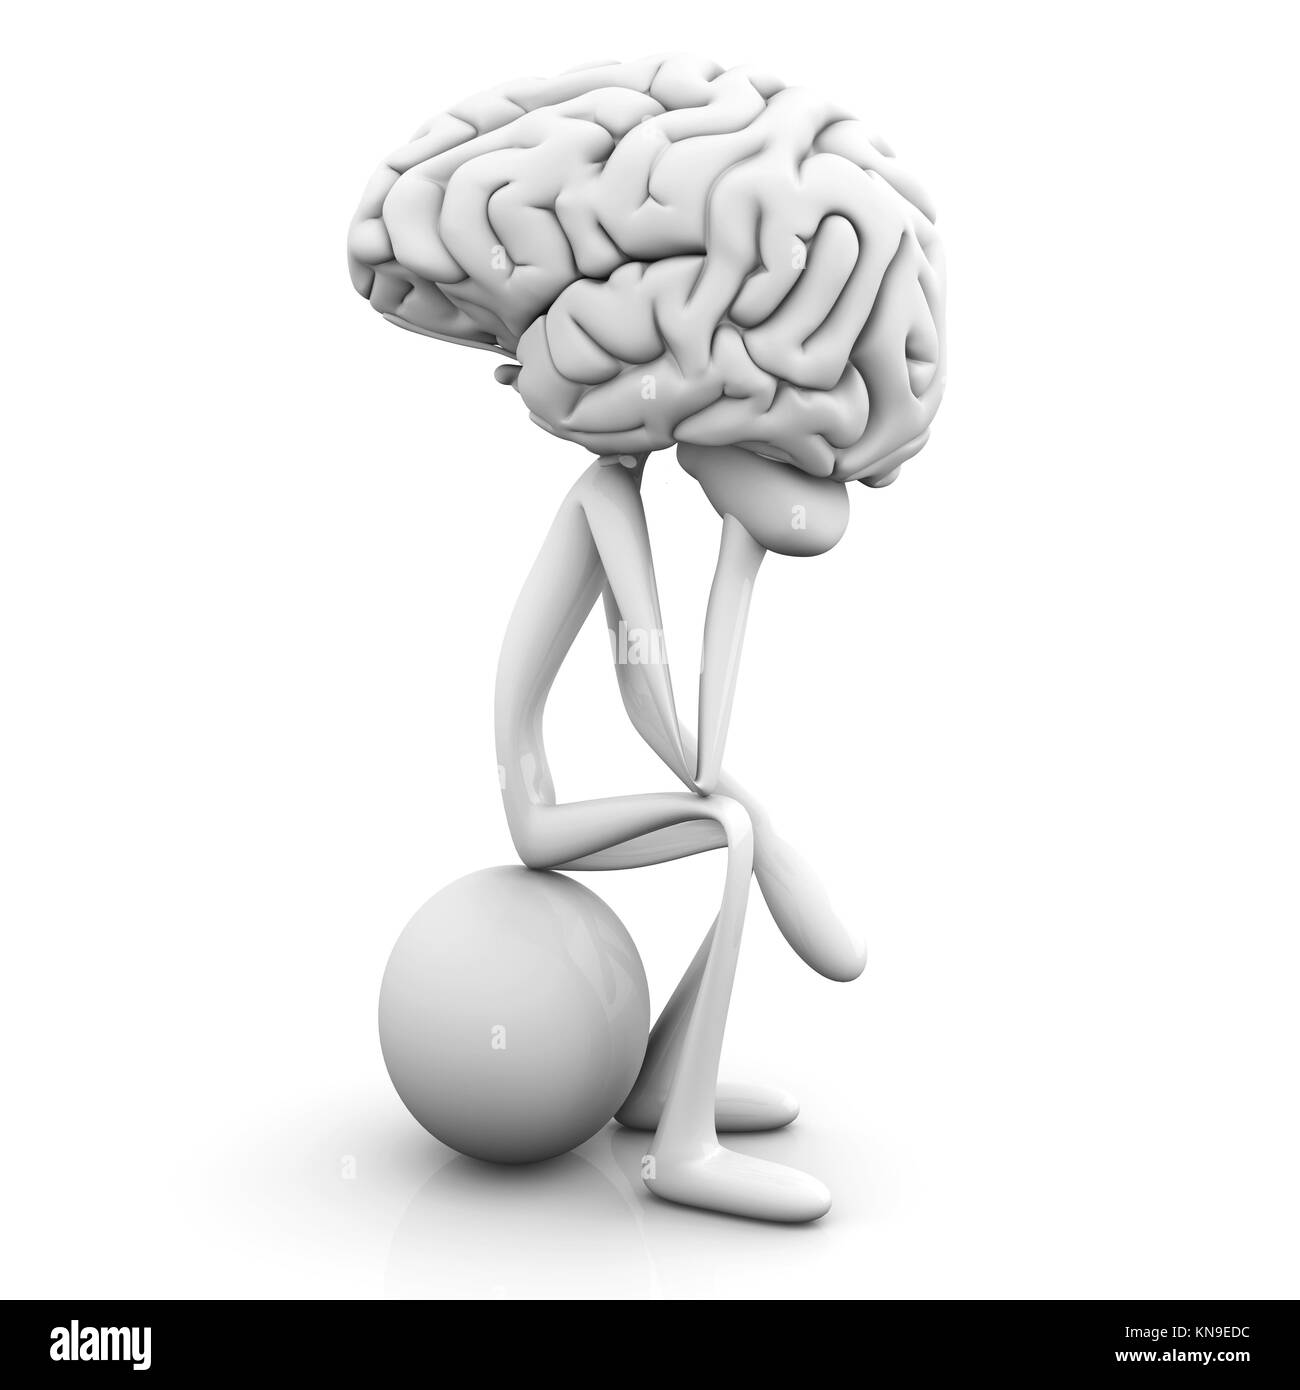 A cartoon figure con a huge brain. 3D rendered illustration. Isolated on white. - Stock Image